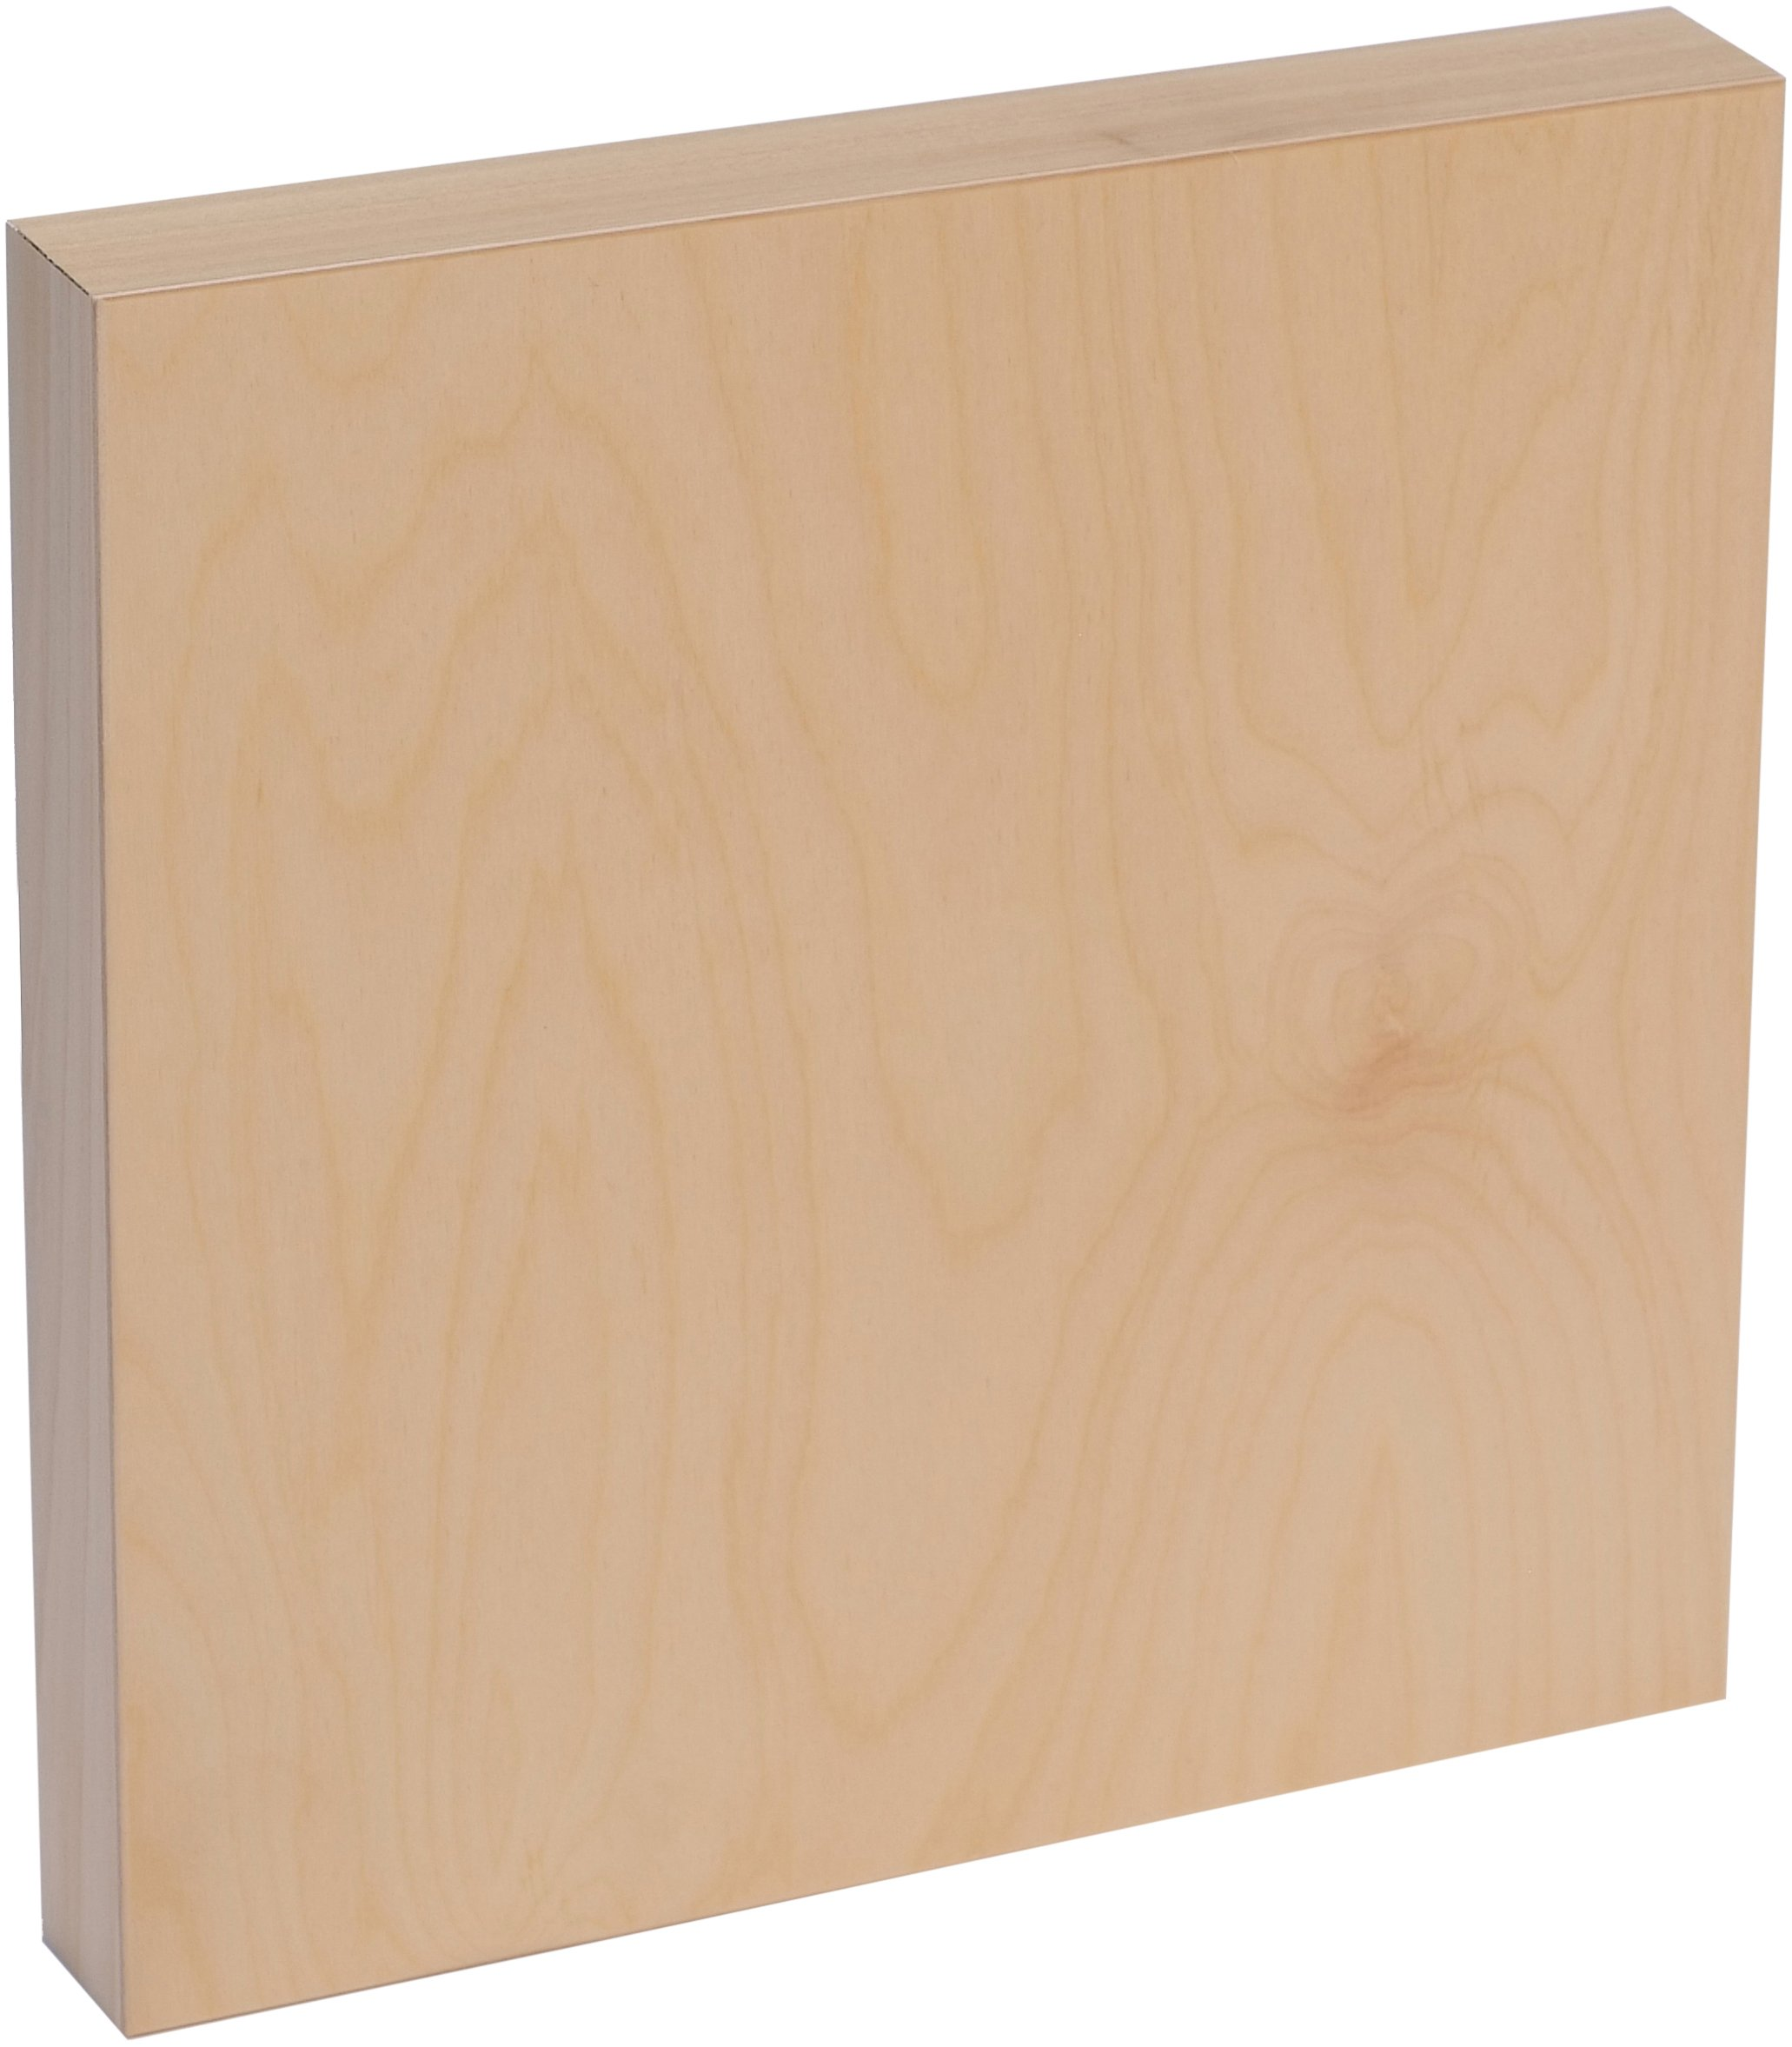 American Easel 18 Inch by 18 Inch by 1 5/8 Inch Deep Cradled Painting Panel (AE1818D) by American Easel, LLC.